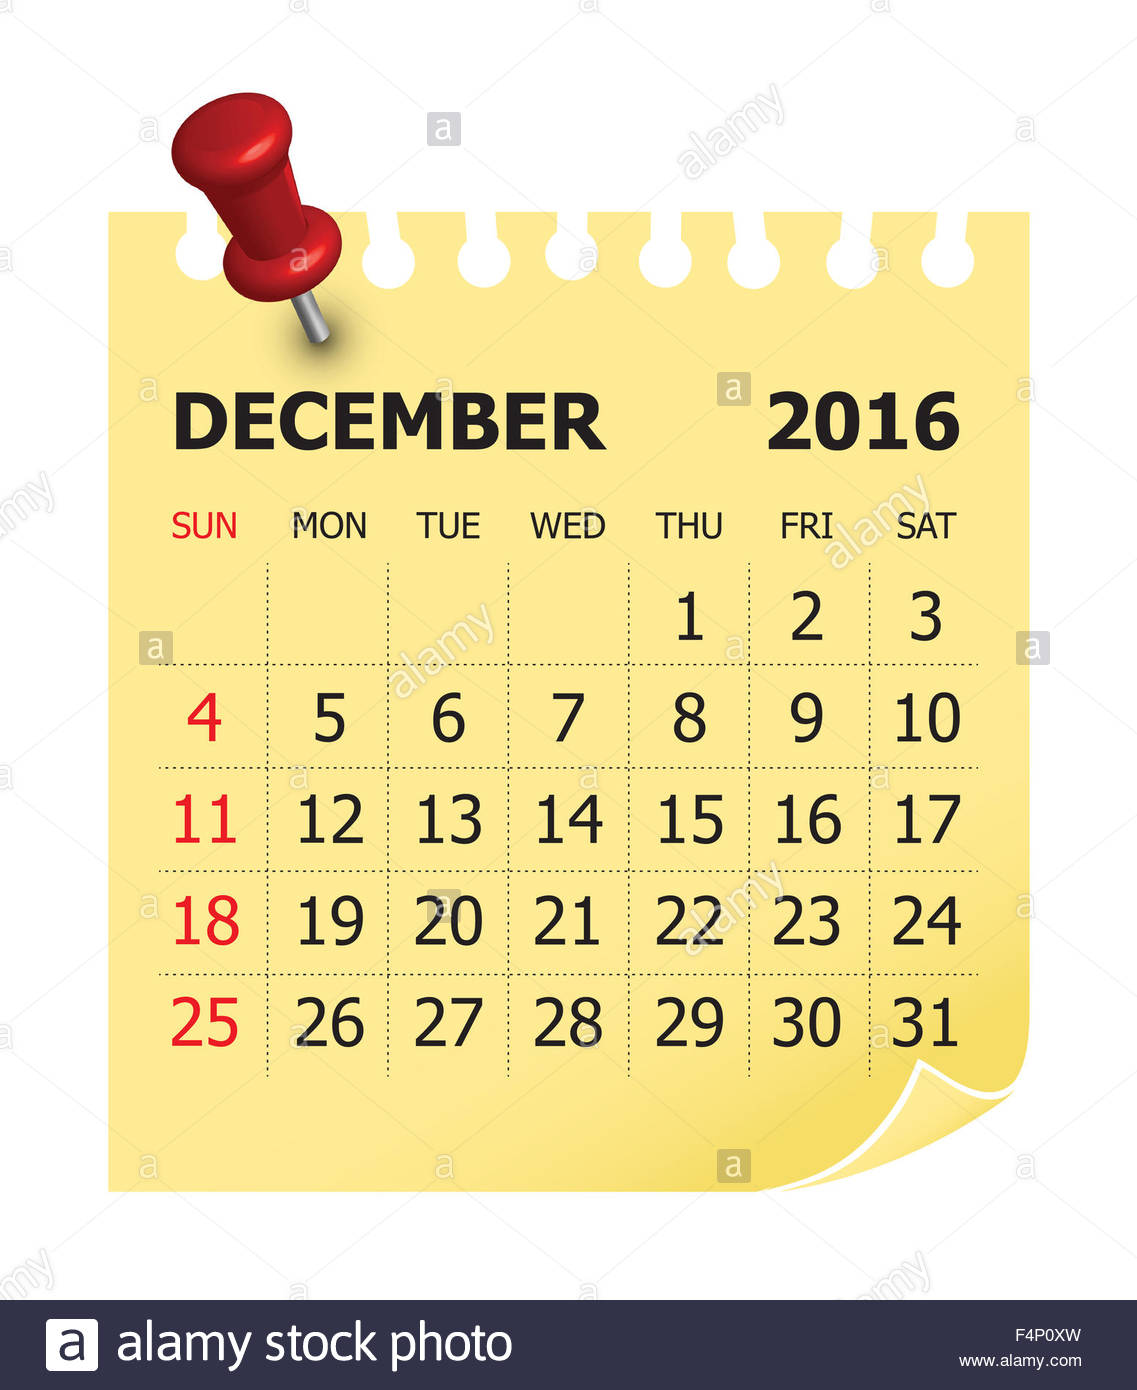 December simple calendar clipart png black and white download Simple Calendar For December 2016 Stock Photo, Royalty Free Image ... png black and white download